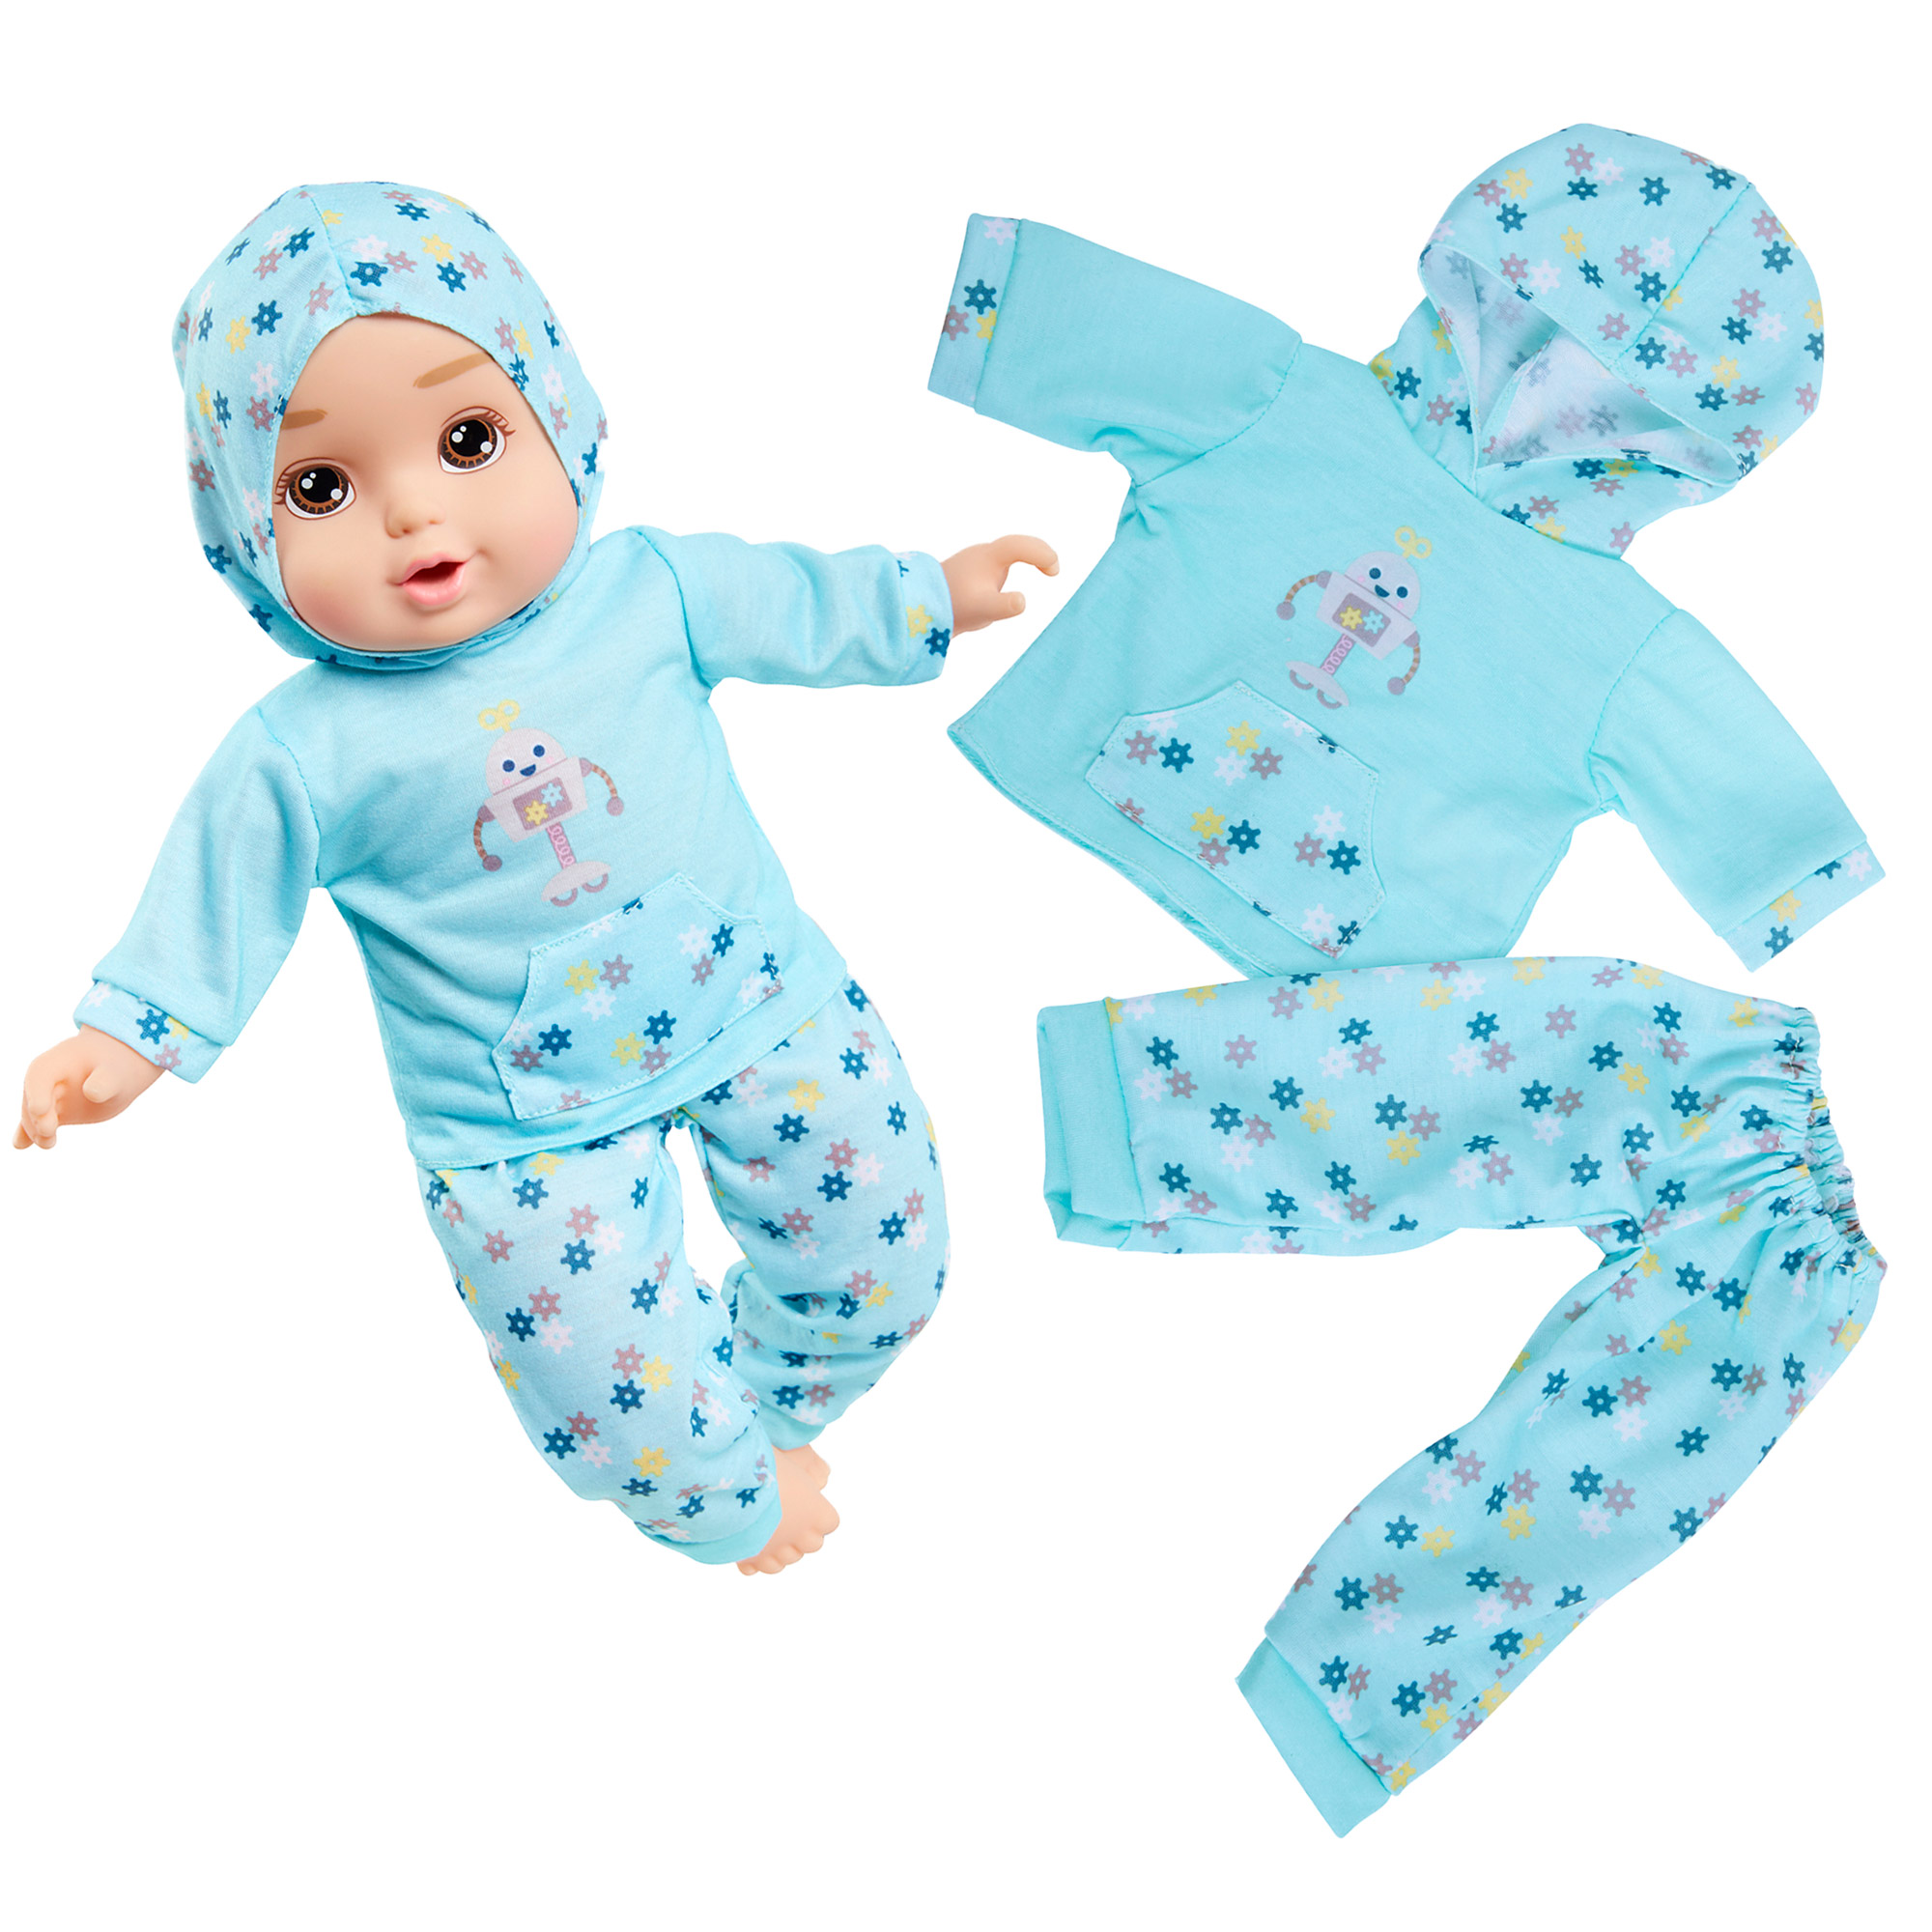 Perfectly Cute Baby 2 Piece Hoodie & Pants